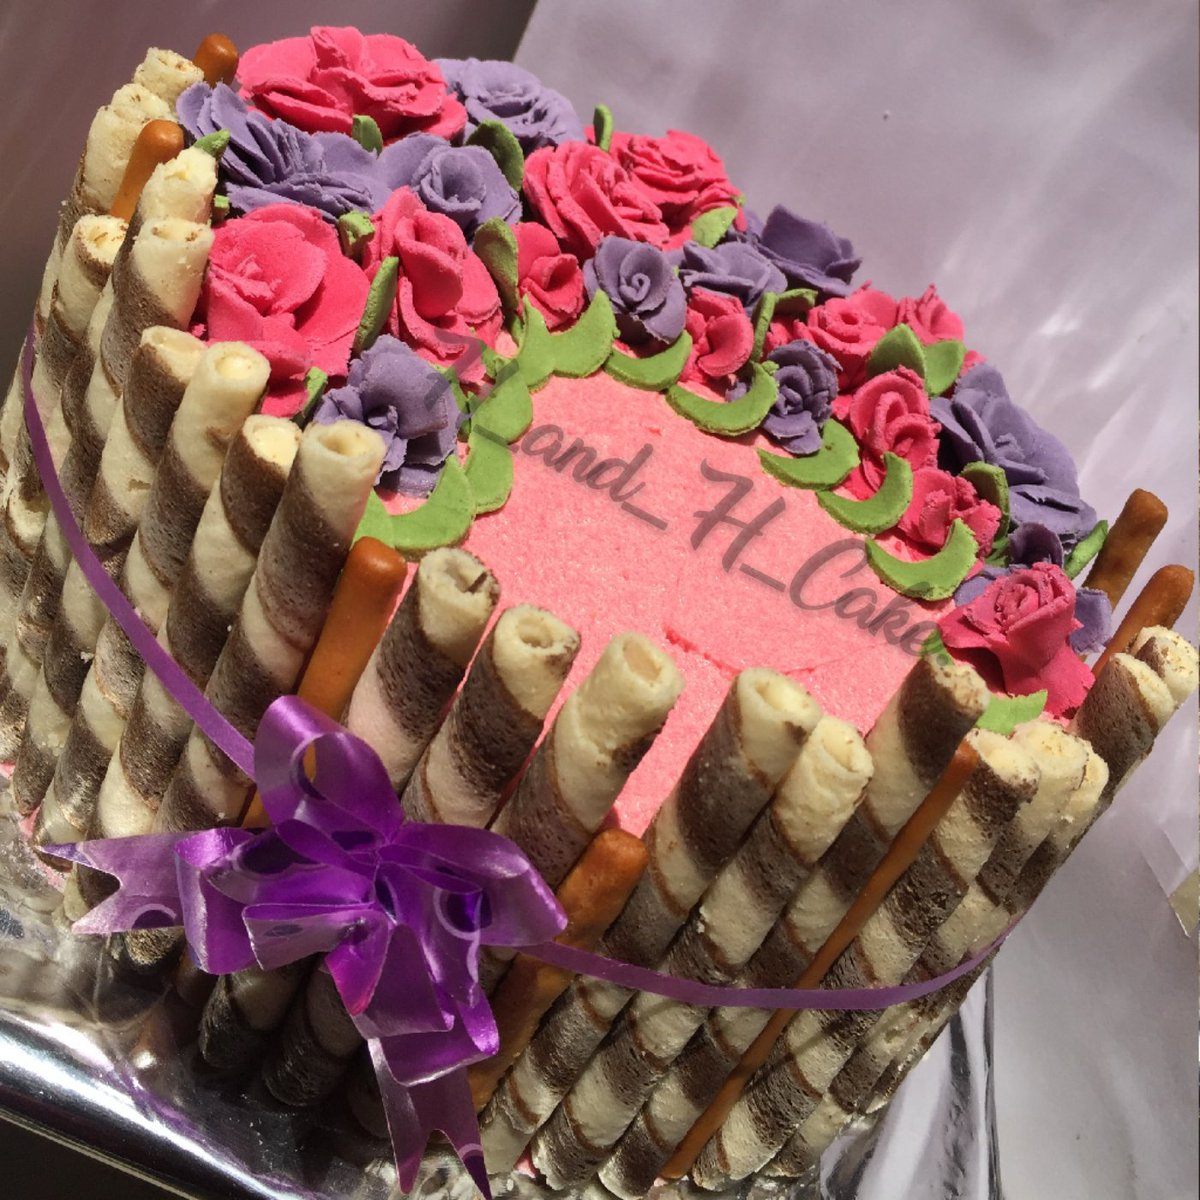 We bring you the best in baking with a gourmet twist #h_and_h_cakes<br>http://pic.twitter.com/g7Jf1fJKXV